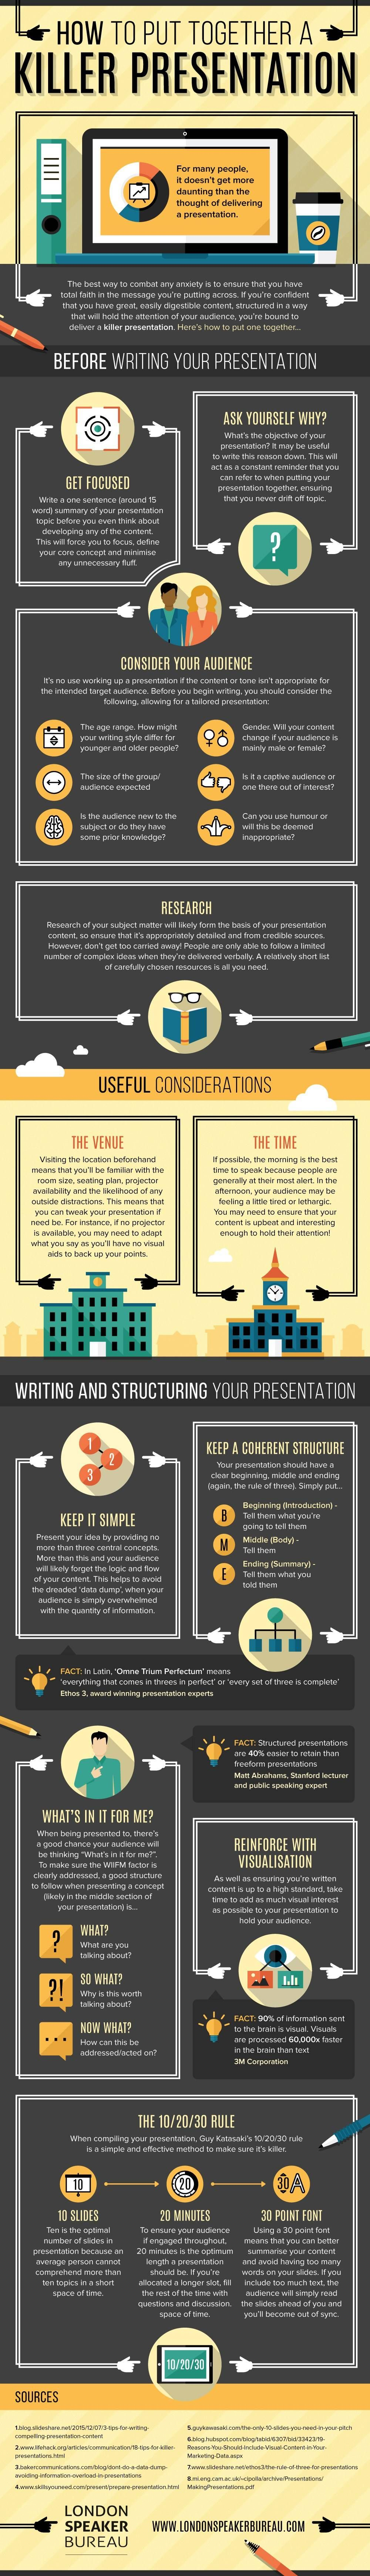 How To Put Together A Killer Presentation Infographic